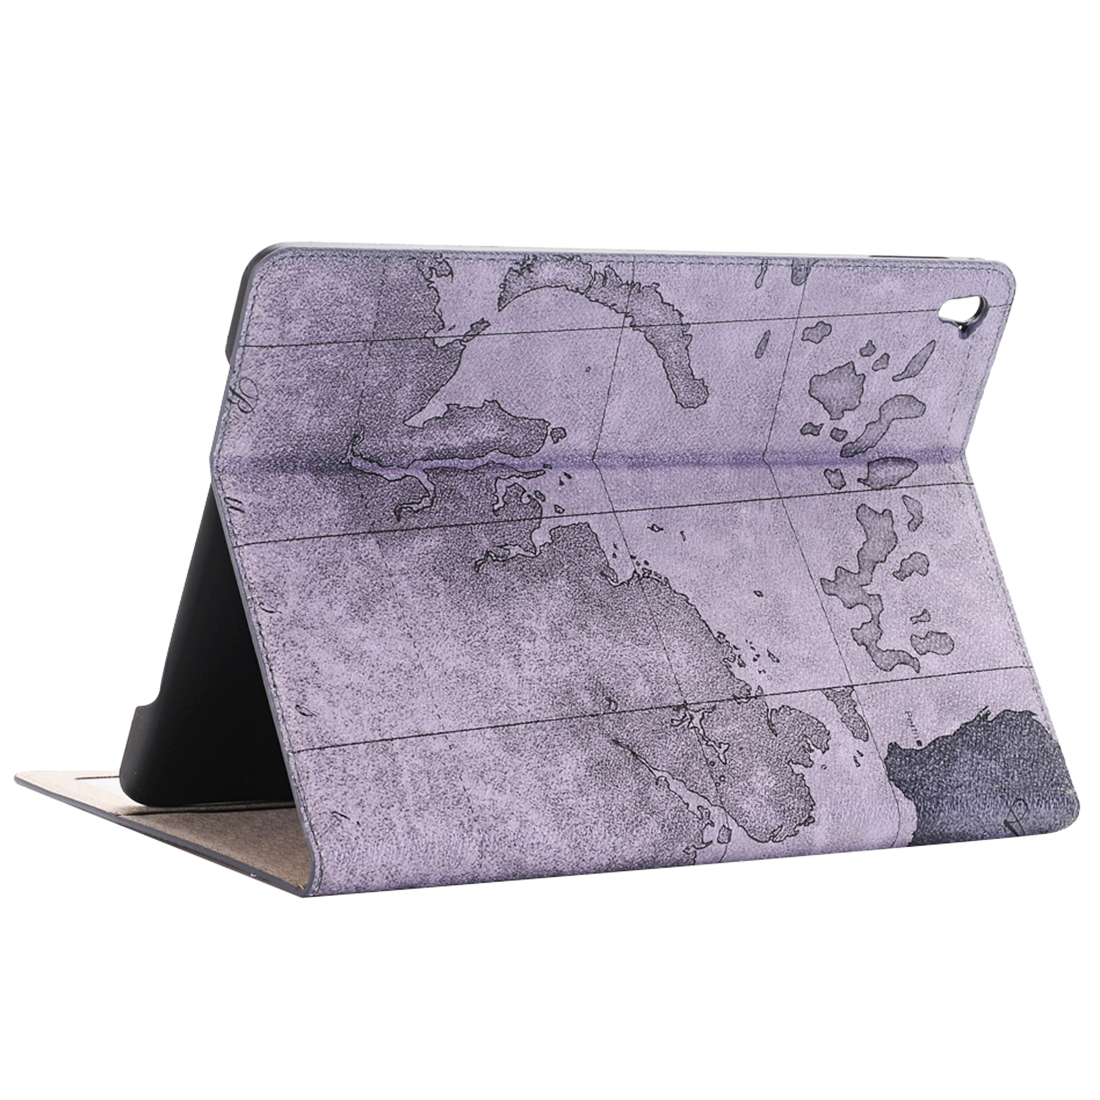 Map Leather iPad Air 2 Case (9.7 Inch) Slim Profile Random Pattern Delivery